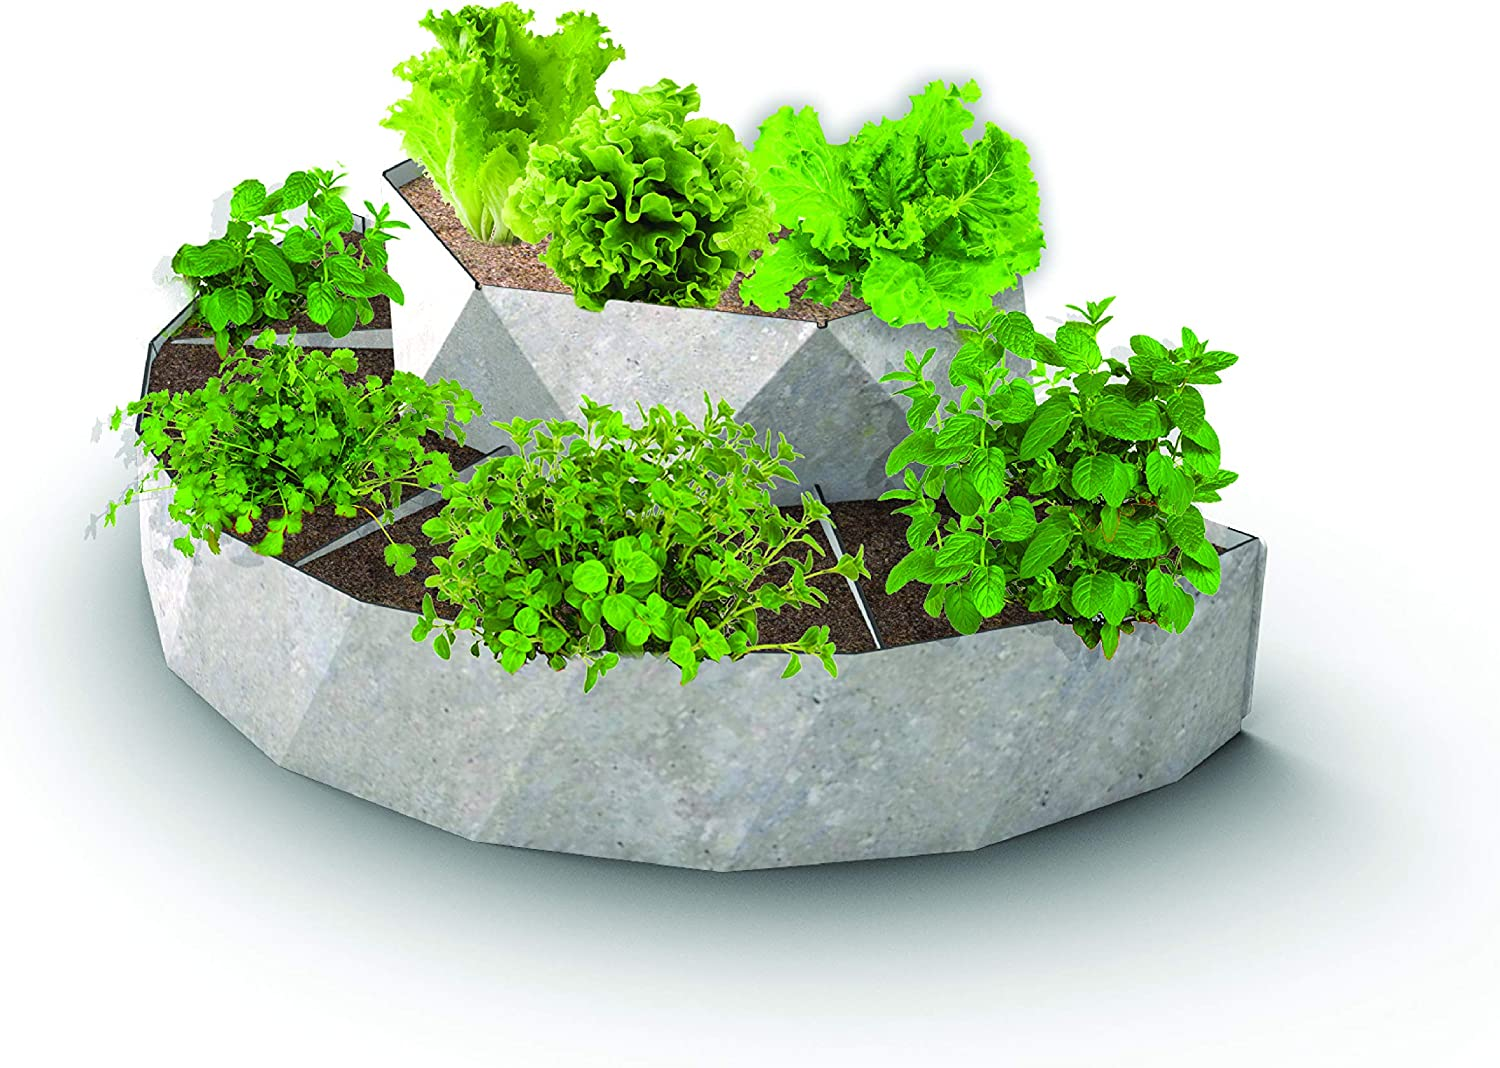 Palram Jenny Crescent Raised Garden Planter Box: 3D Gray Plastic 2-Tier, 5-Section, Half-Moon Modular Outdoor Flower Herb Vegetable Bed, 12x36x18 Inches